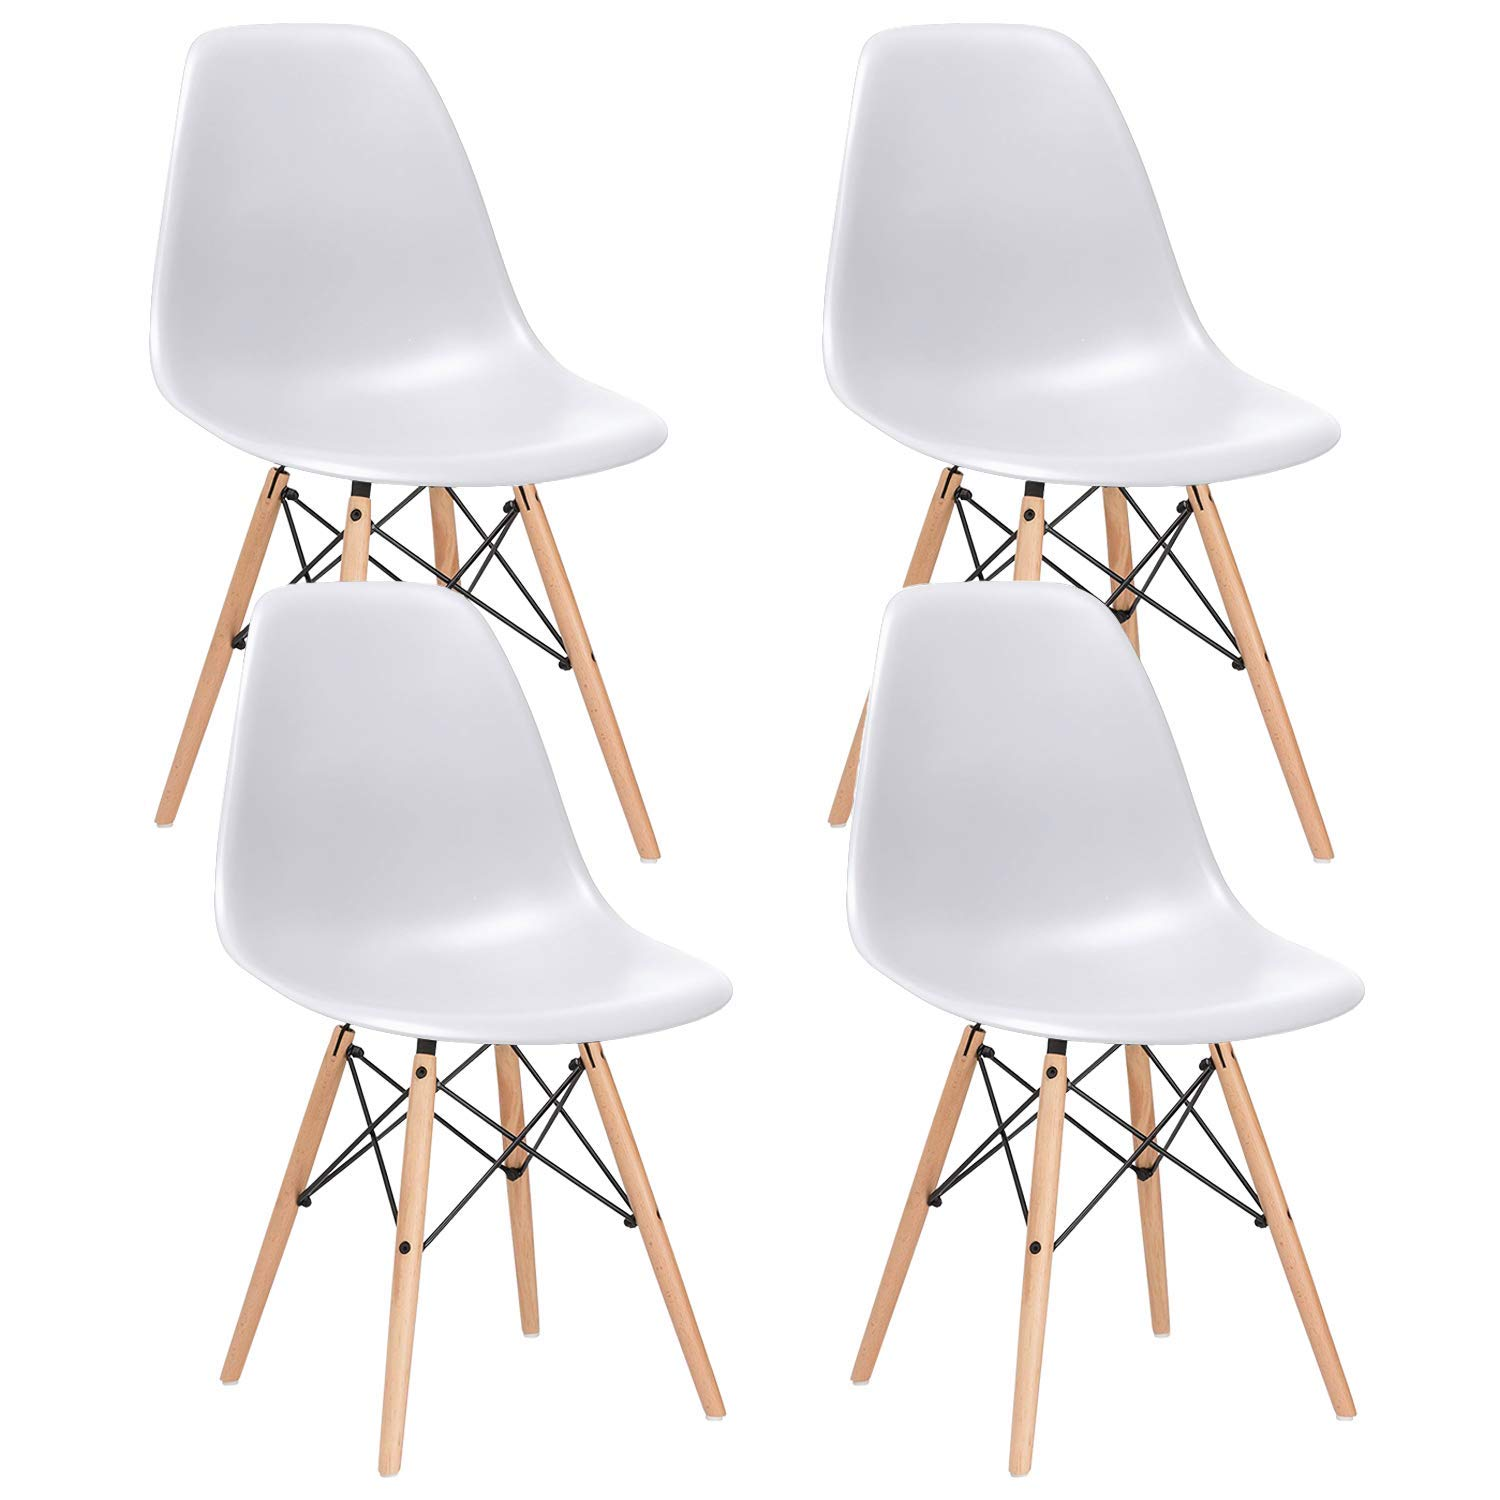 Nicemoods Mid Century Modern Style Dining Chairs,Pre Assembled Indoor Chair Armless Classic Eames Plastic Chair Wooden Legs Set of 4 for Kitchen, Dining Room, Bedroom, Living Room Side Chairs (White)